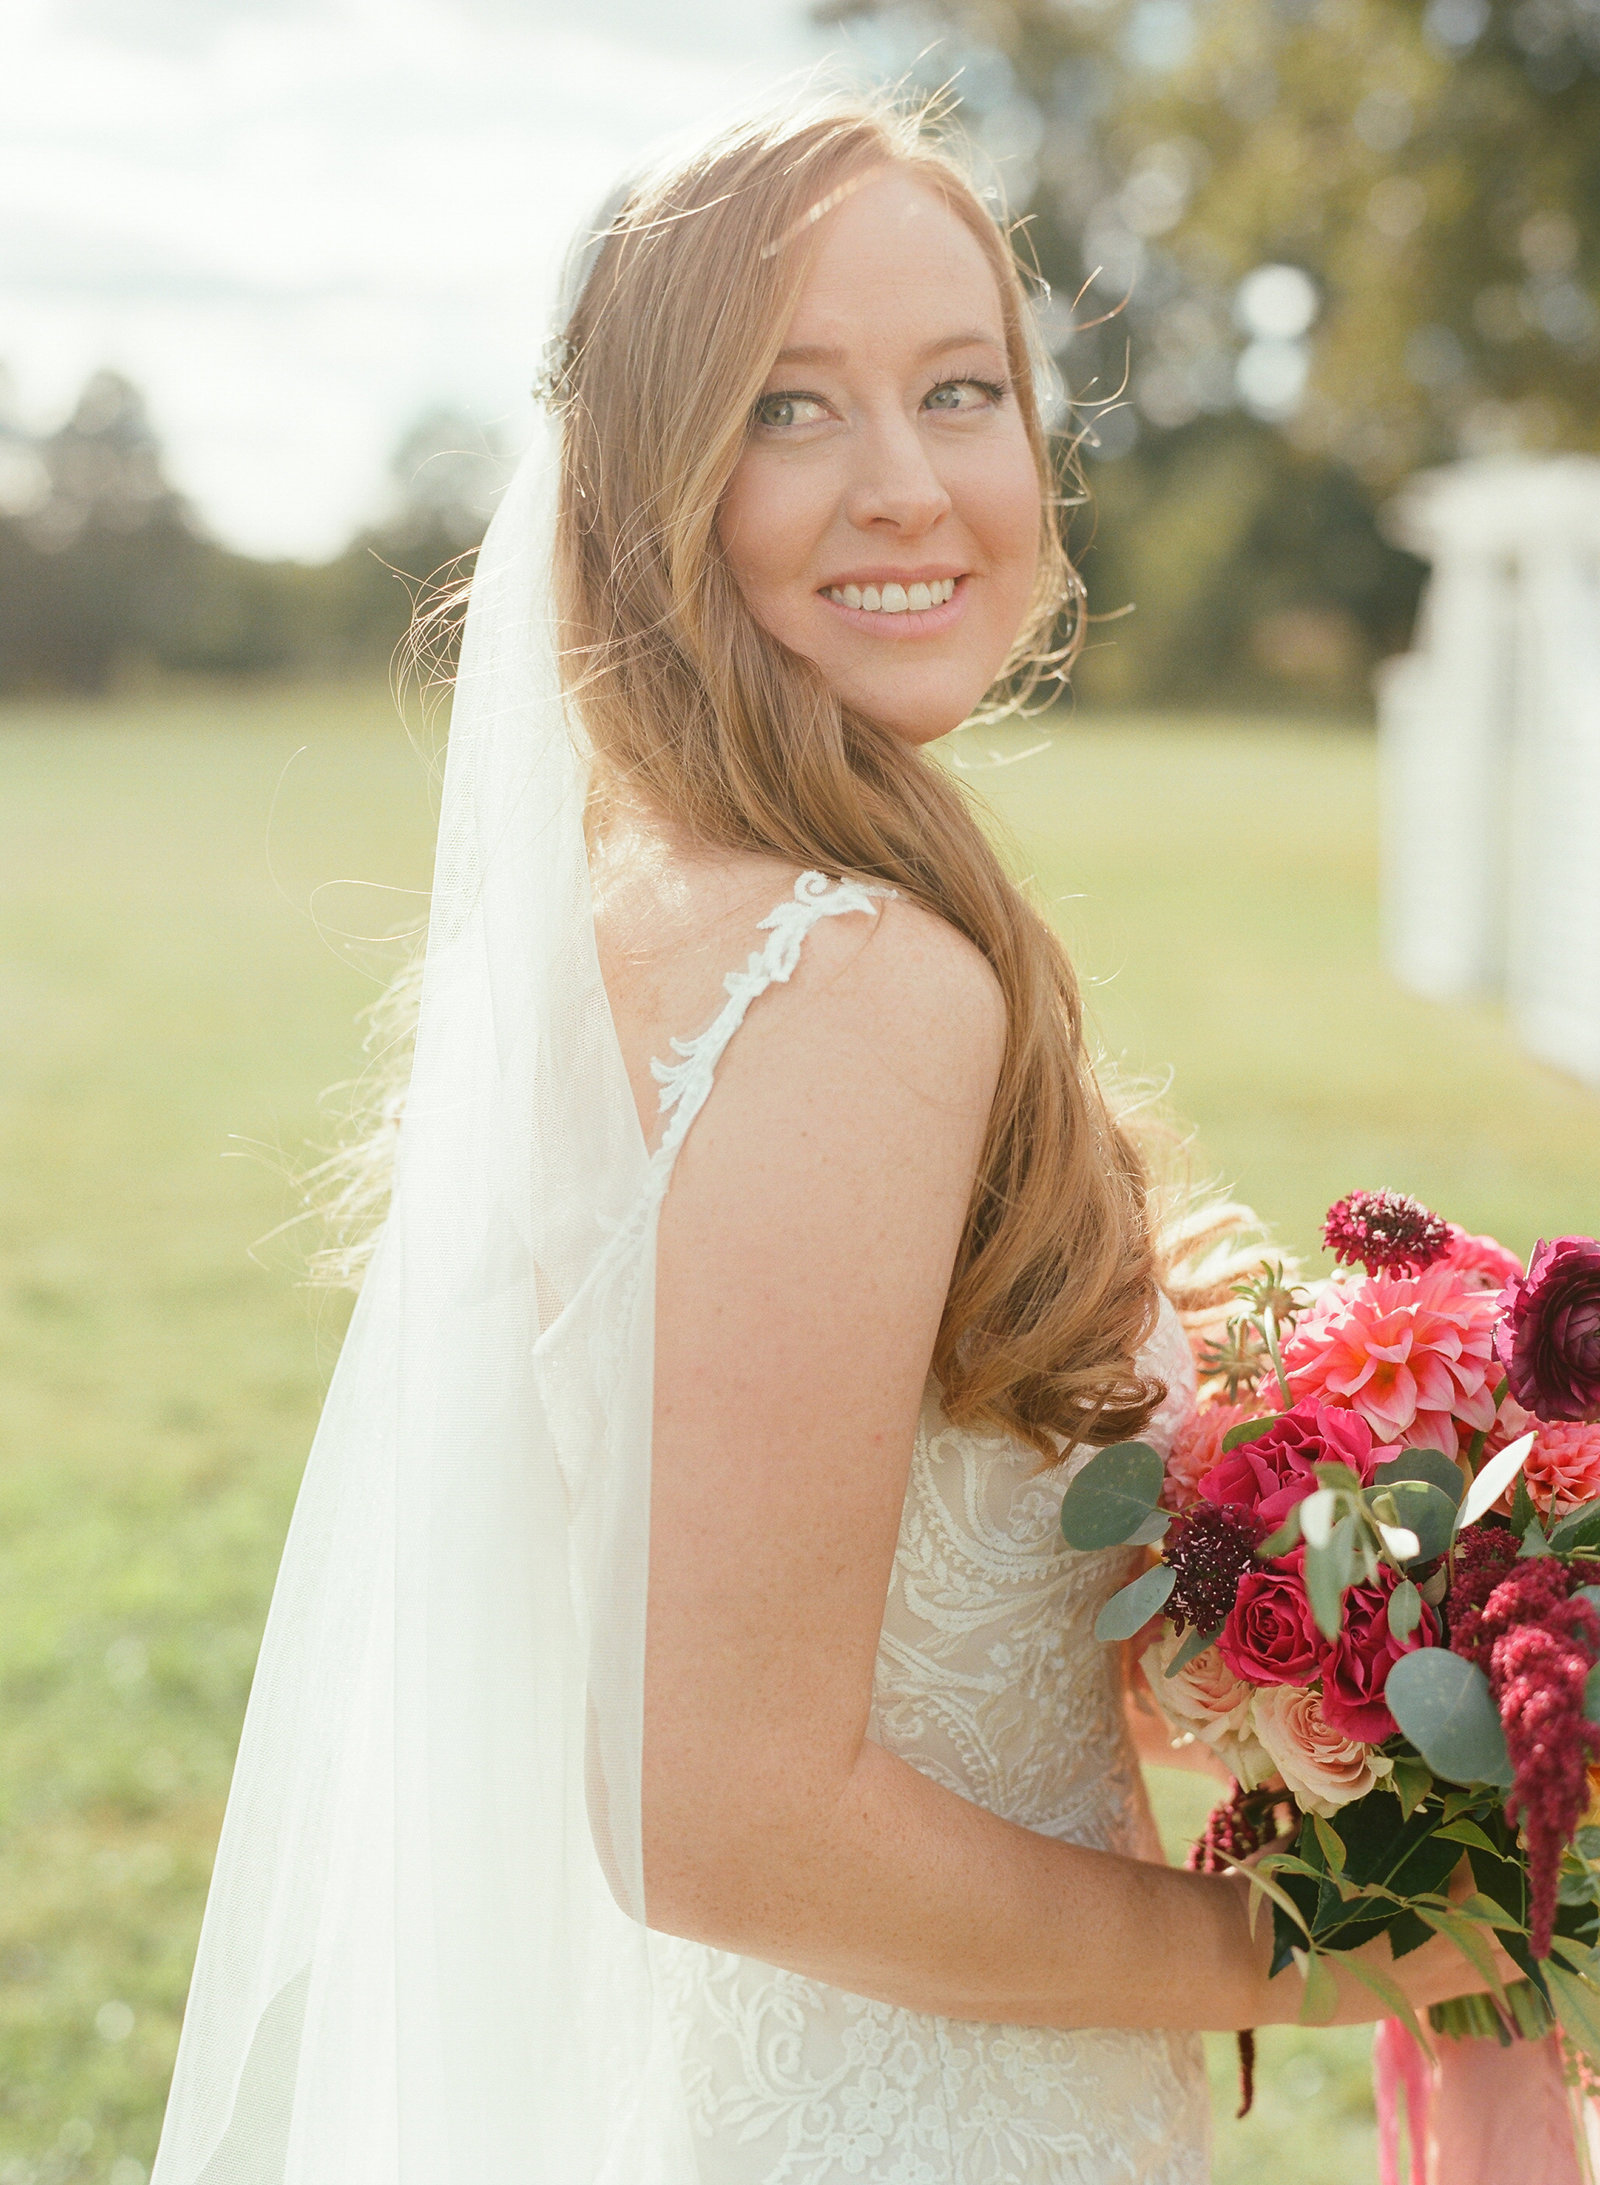 Pamela Barefoot, Atrendy, Warner Hall wedding, Virginia wedding, holly chapple bouquet, juliet veil, martha stewart wedding